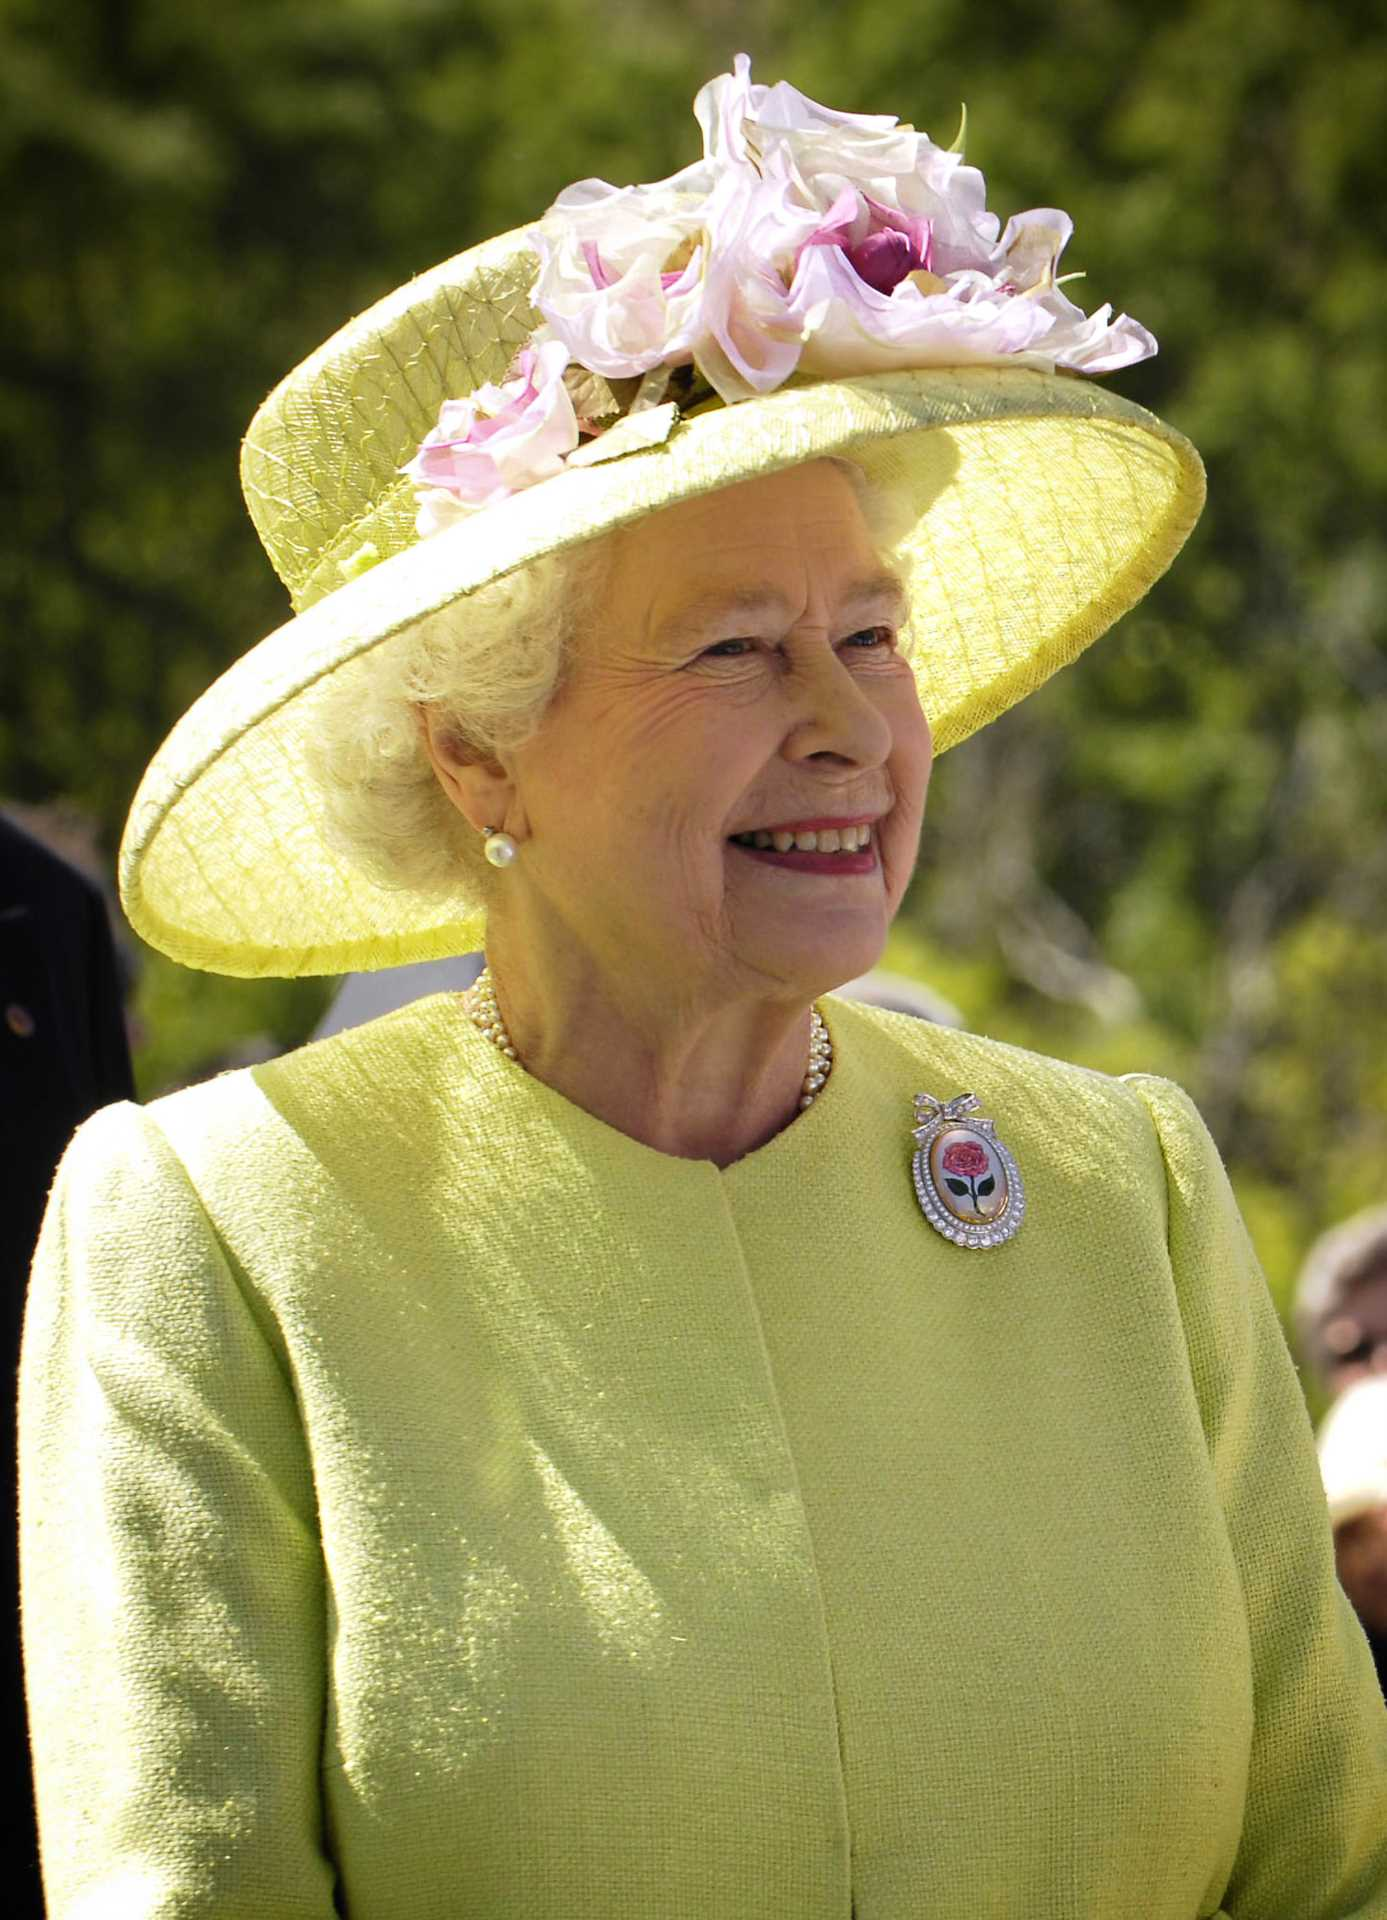 Happy Birthday Your Majesty.